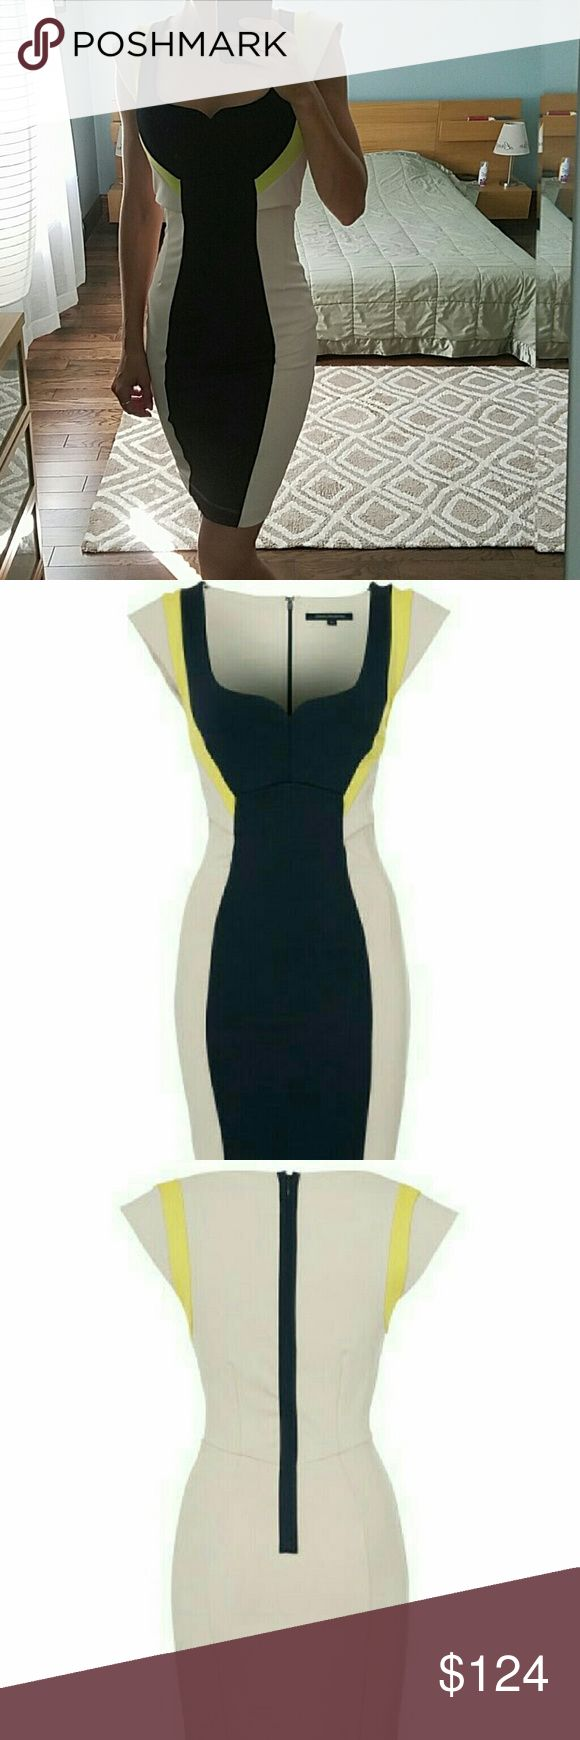 FRENCH CONNECTION DRESS New with tag. Perfect condition.  Nice slimming thick material. French Connection Dresses Mini